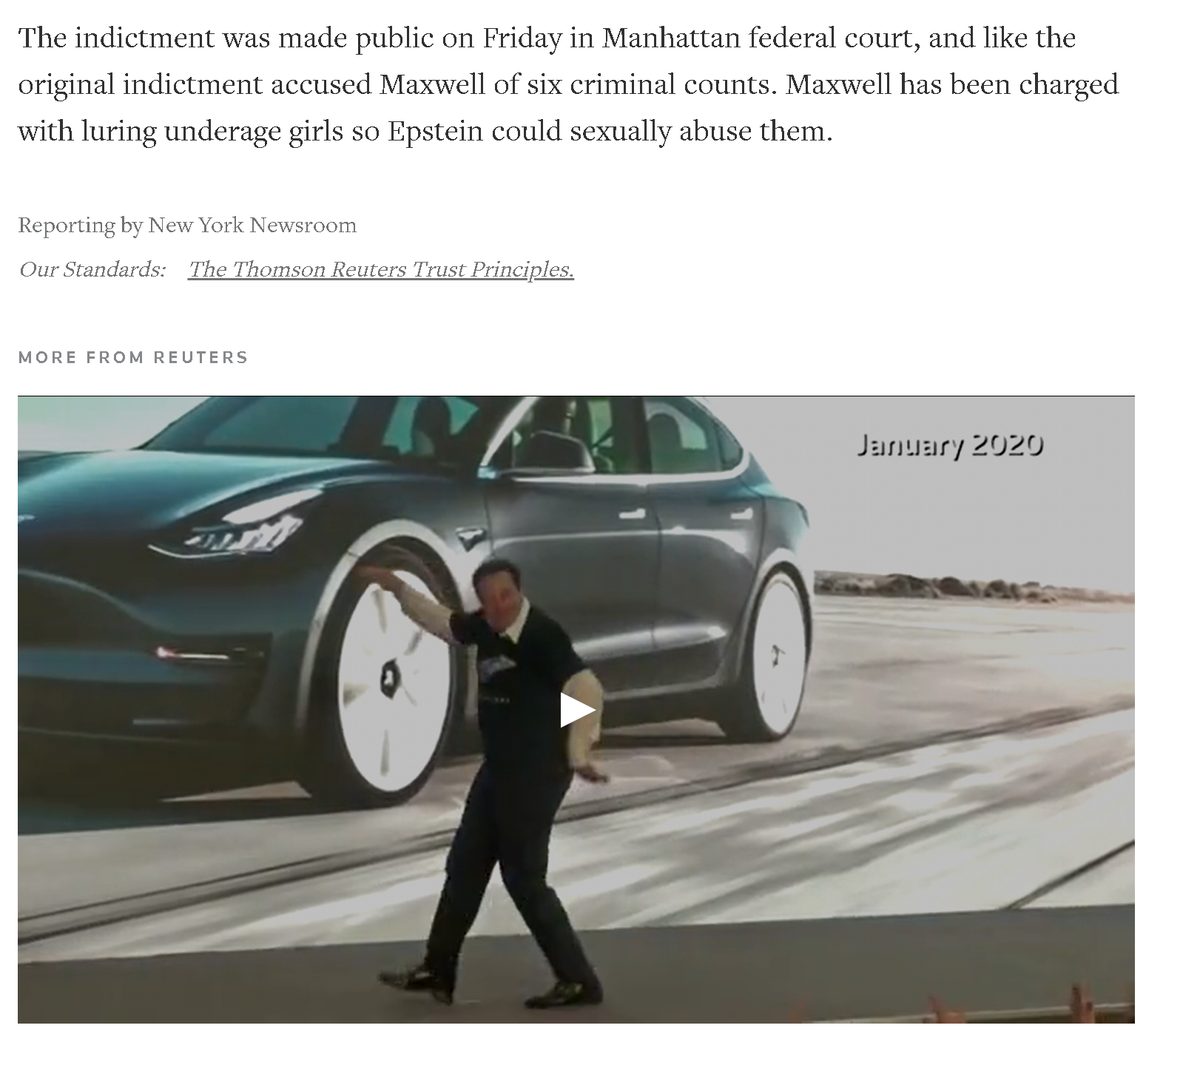 @JCOviedo6 @elonmusk below the text of that story appears this promo piece - https://t.co/RW72FsCWYi